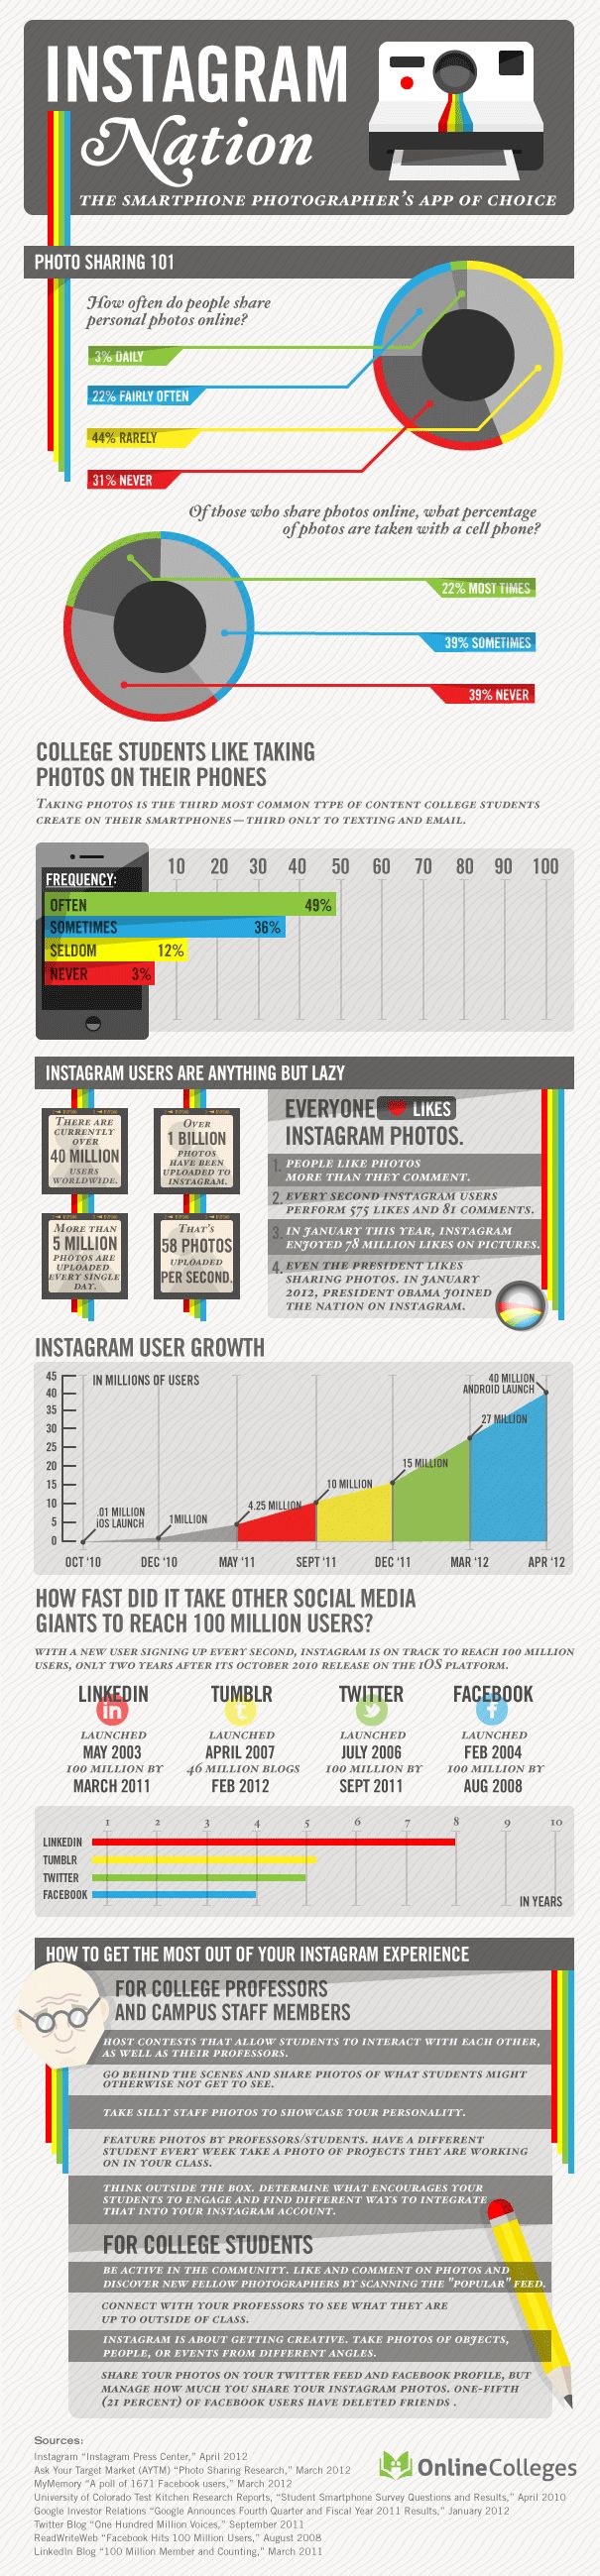 Instragram took America by Storm - today 5 million photos are uploaded every day [Infographic]